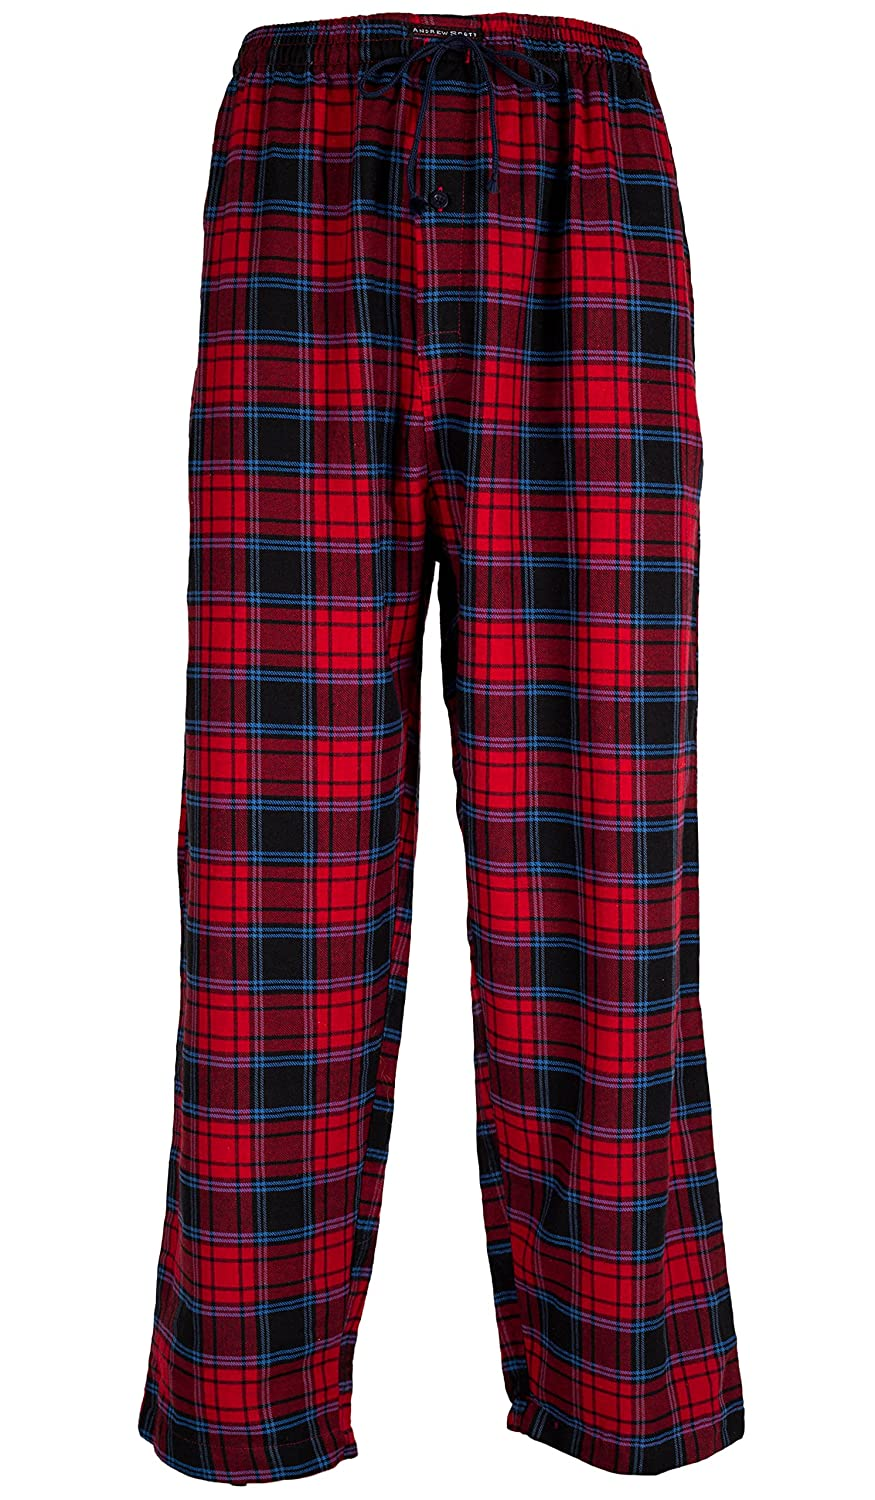 Amazon.com: Andrew Scott Mens 3 Pack Cotton Flannel Fleece Brush Pajama Sleep & Lounge Pants: Clothing